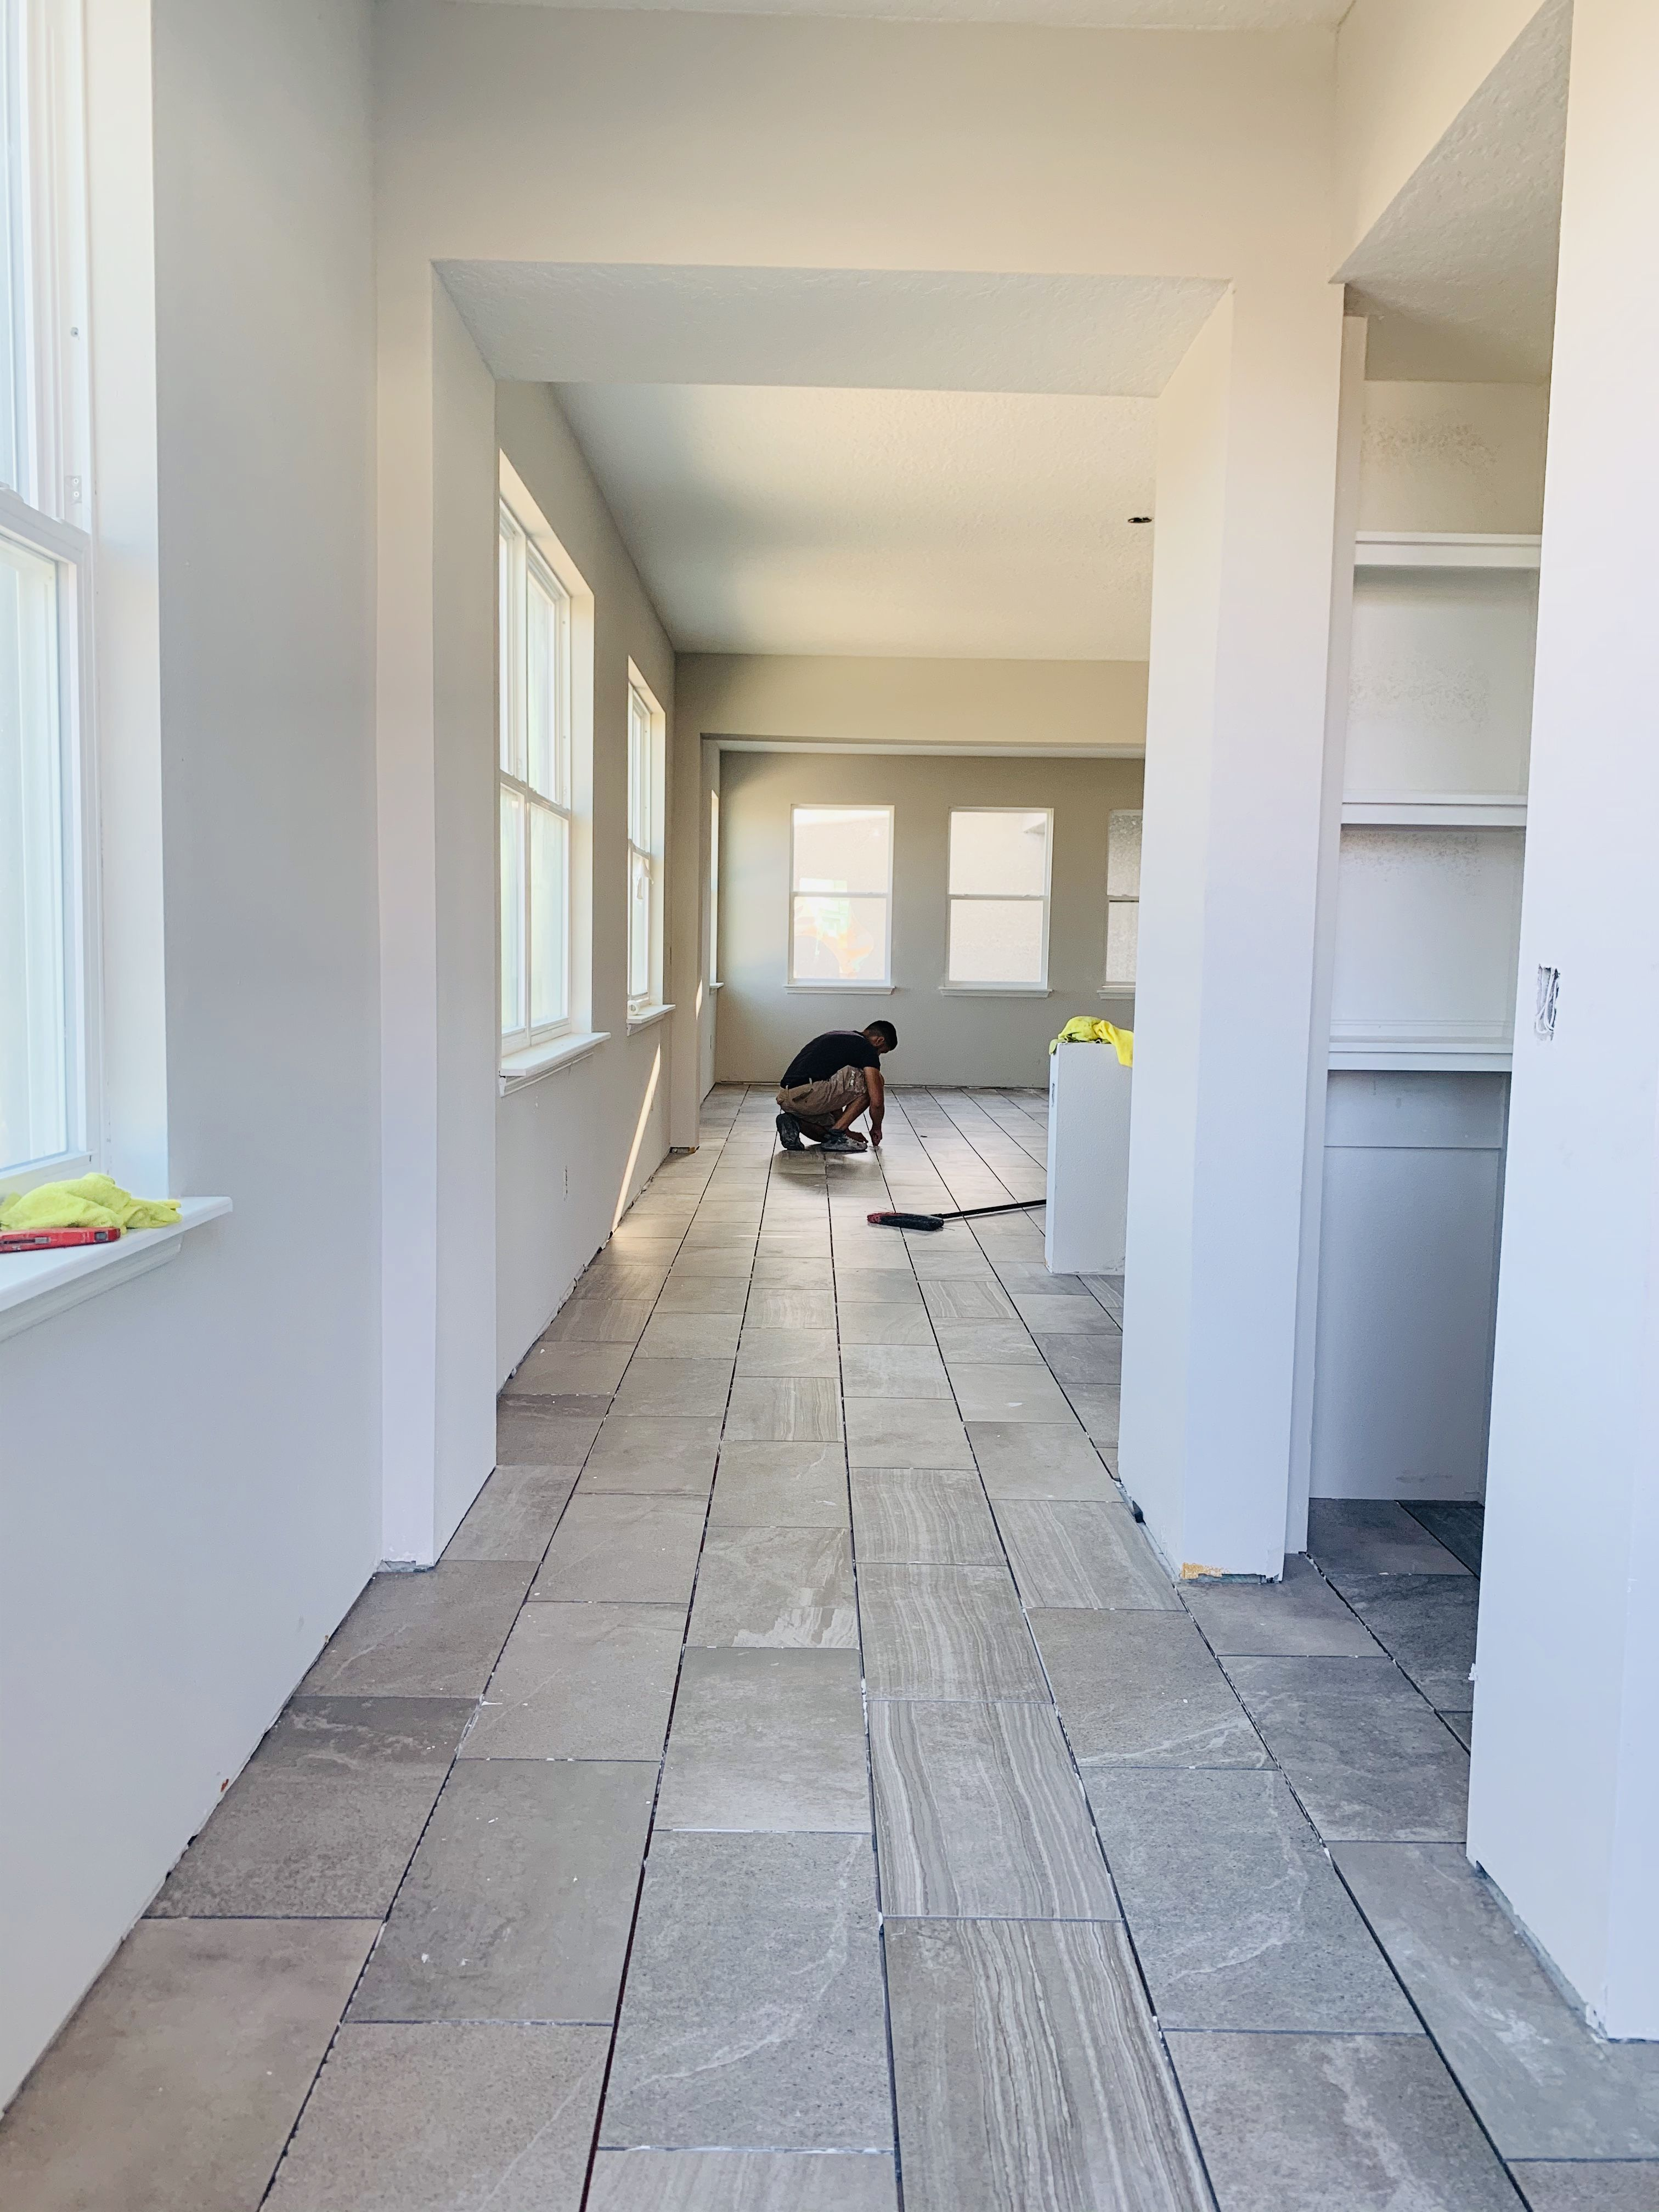 Looking to maximize space? vertical textured wood tile is perfect!  Allows the entry to instantly open up. #newhomeconstruction  #newhomeideas